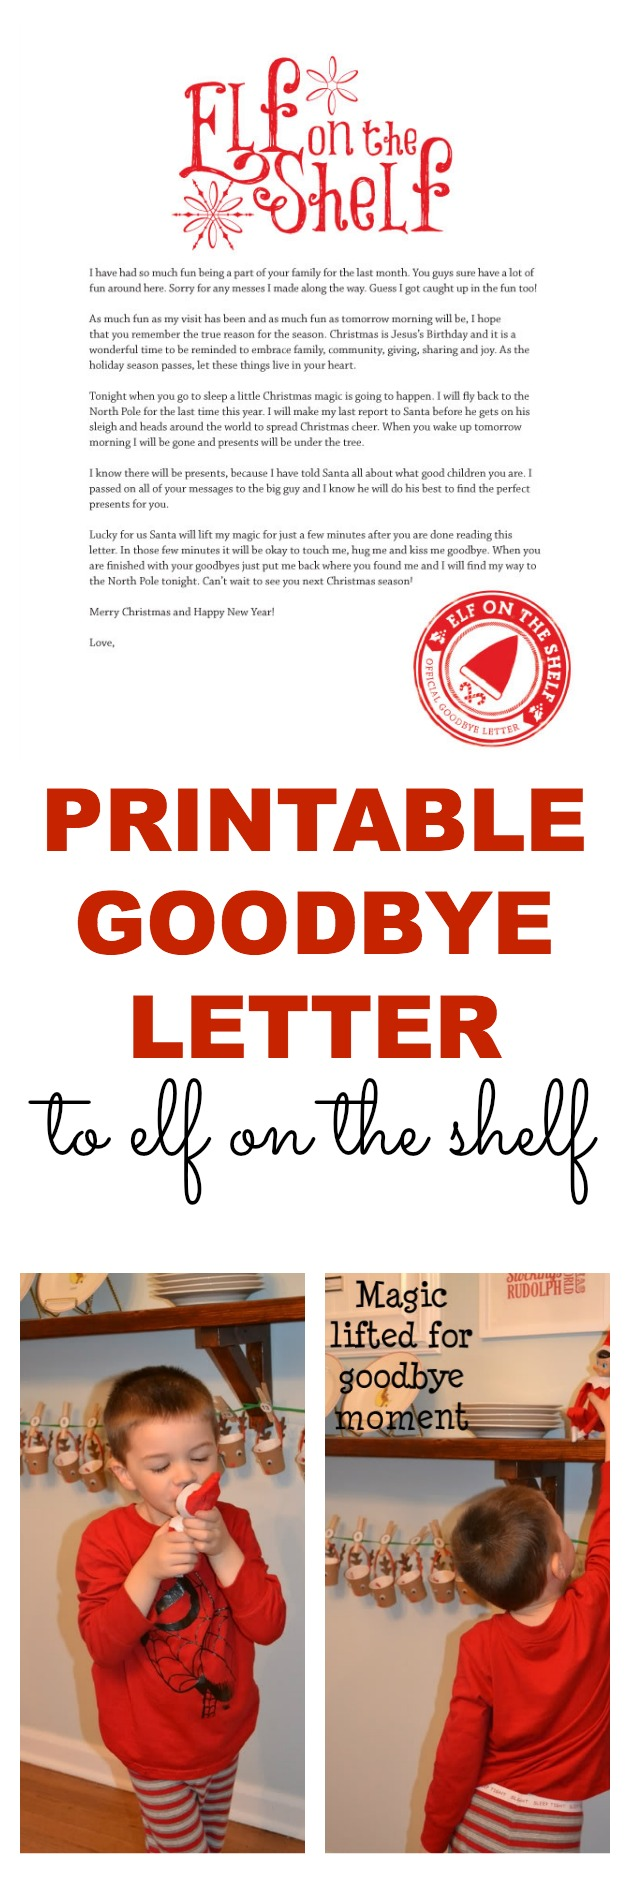 printable-goodbye-letter-for-elf-on-the-shelf